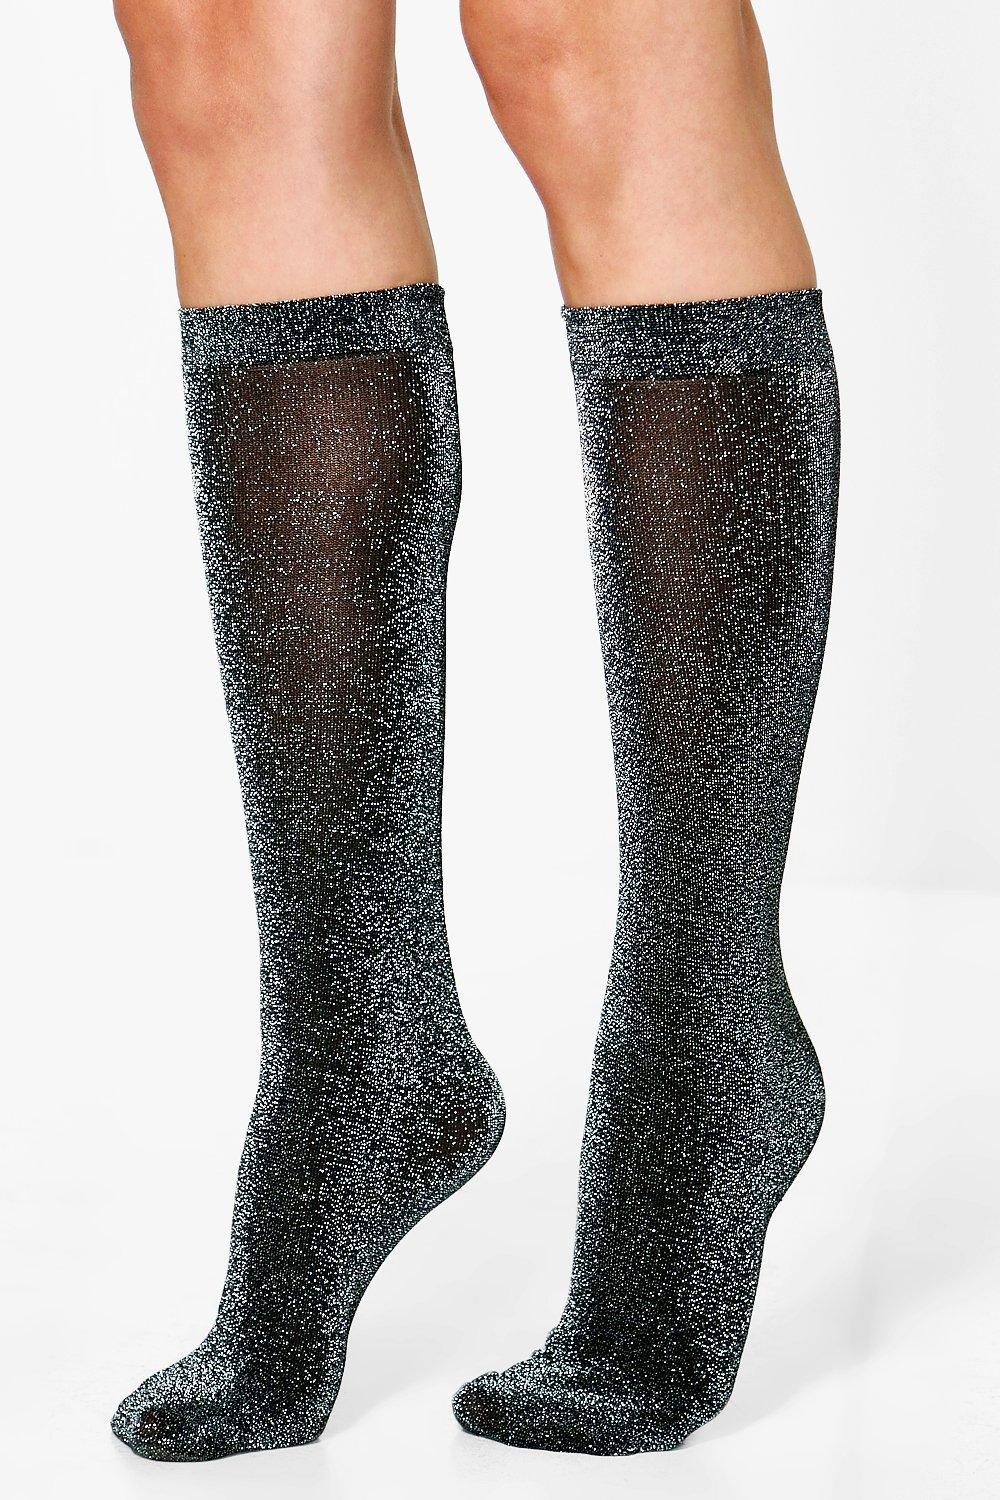 015553e42f0 Macy Glitter Shimmer Knee High Socks